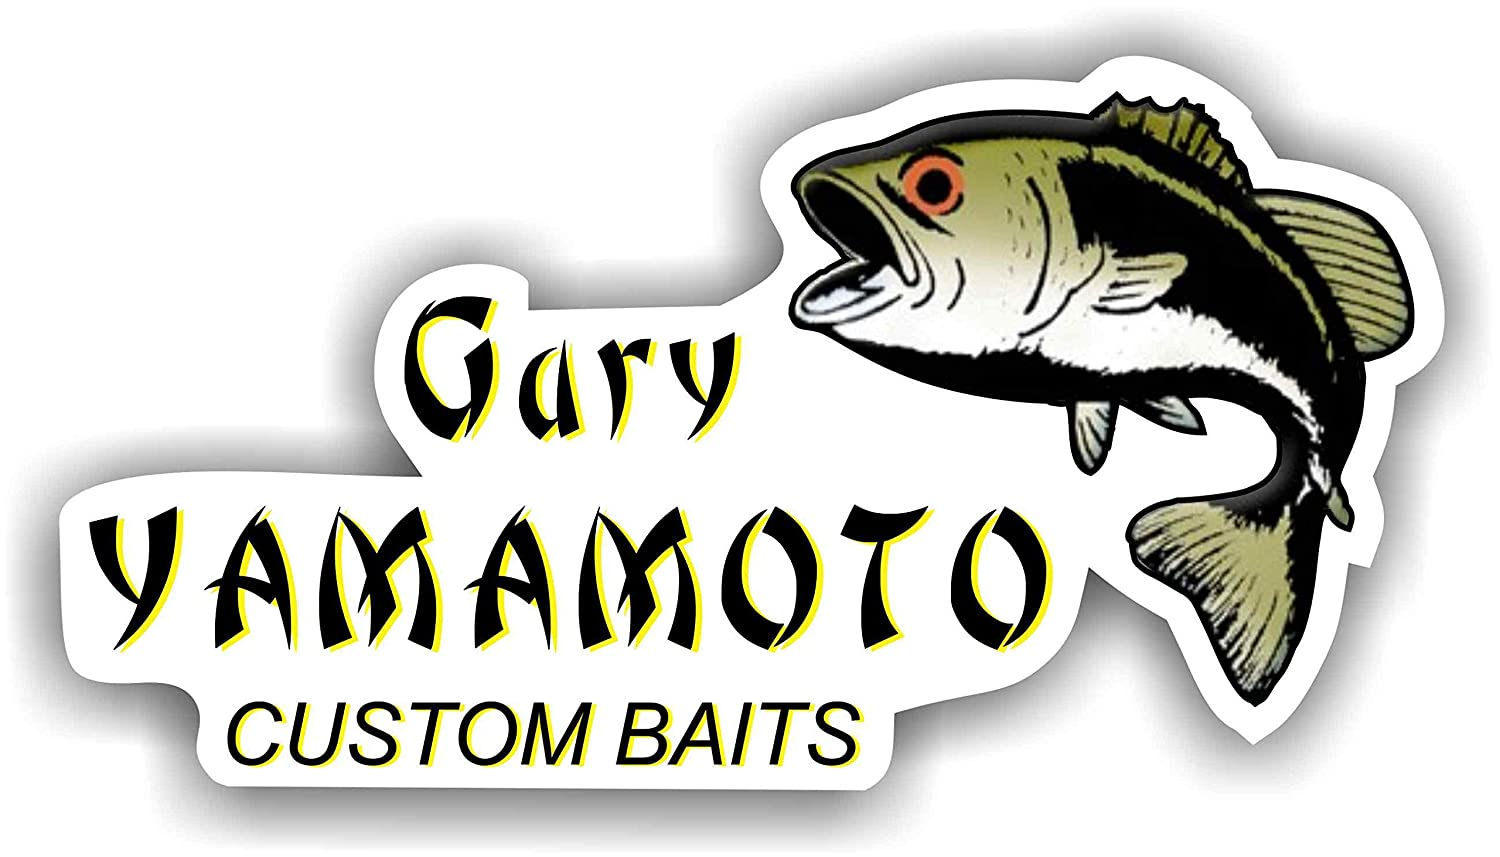 5 Gary Yamamto Decal Sticker Fishing Line Lures Rods Baits